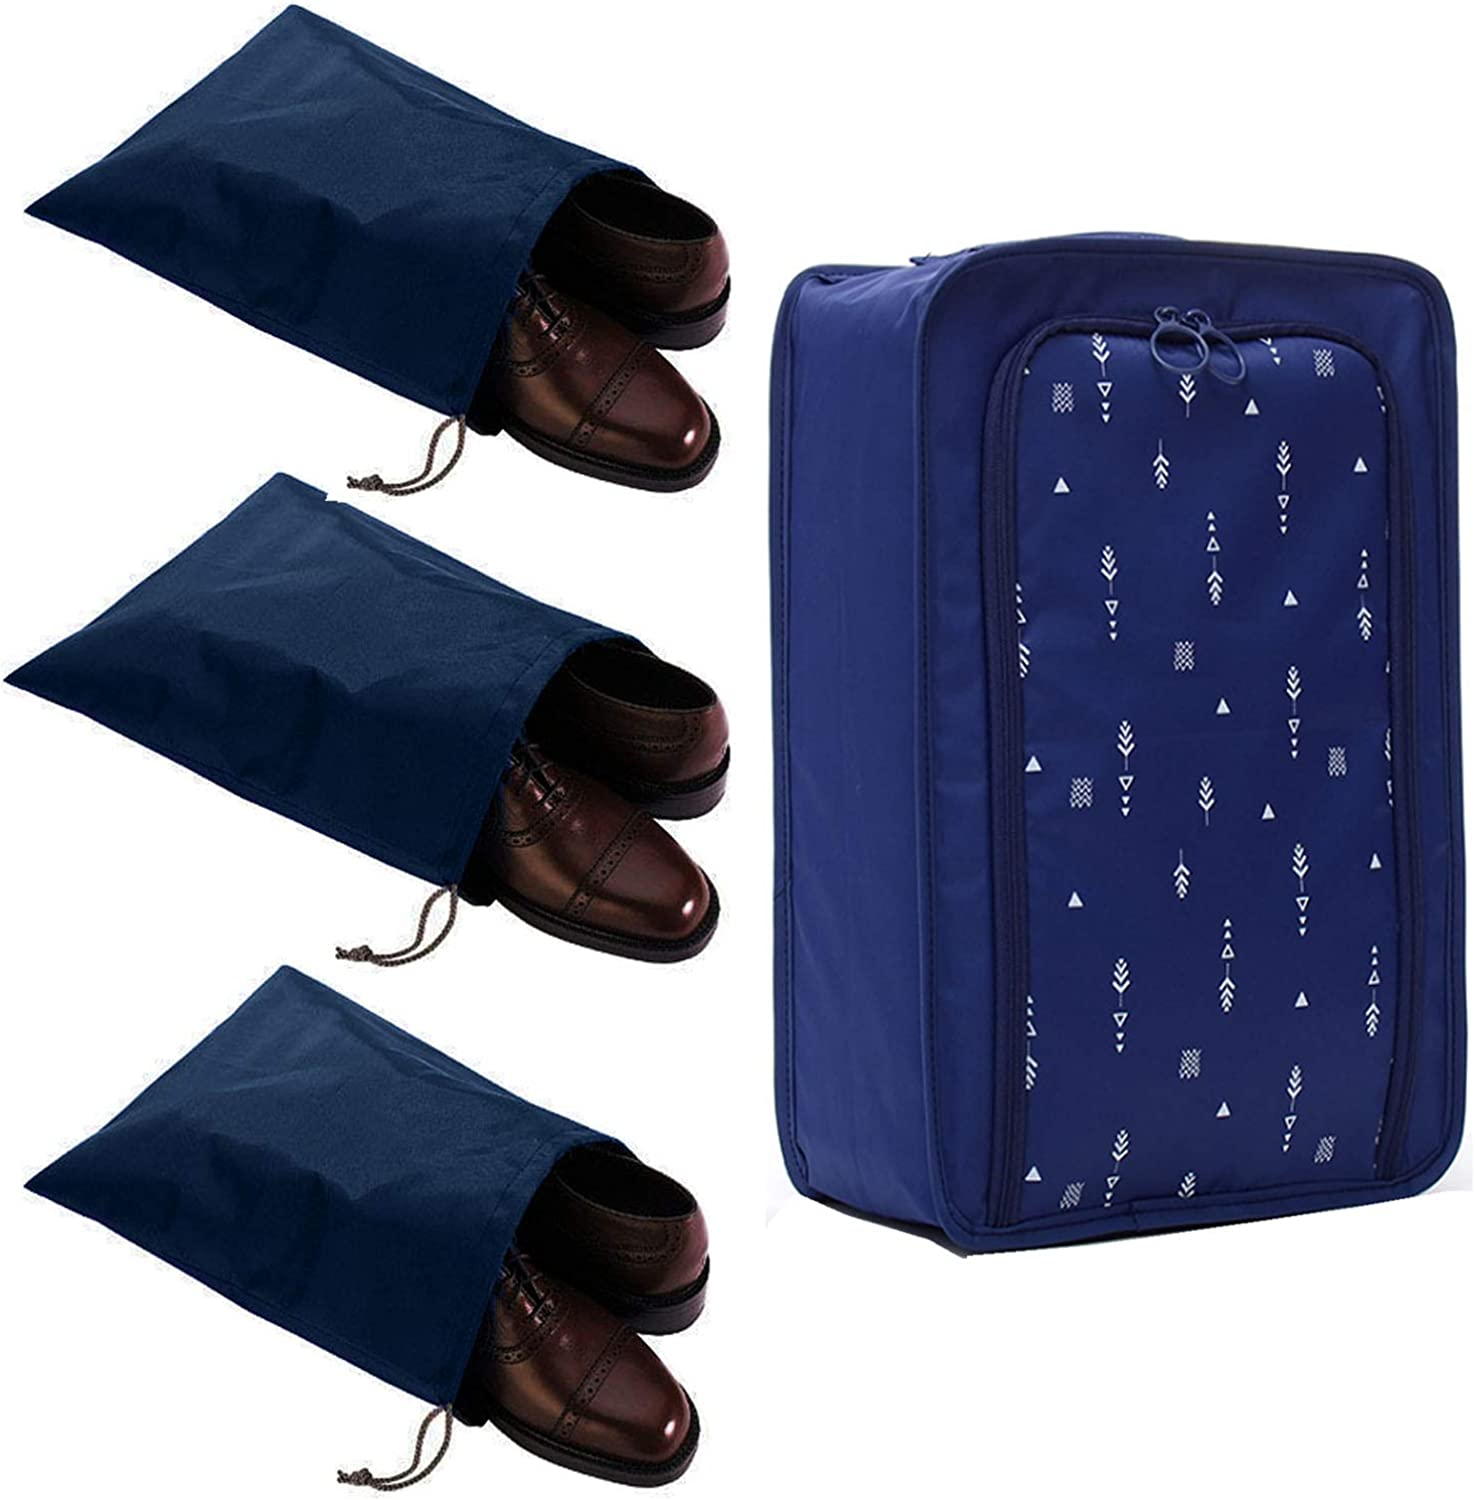 FashionBoutique Set of 4 Great interest Max 73% OFF Waterproof Shoe Bags for Travel